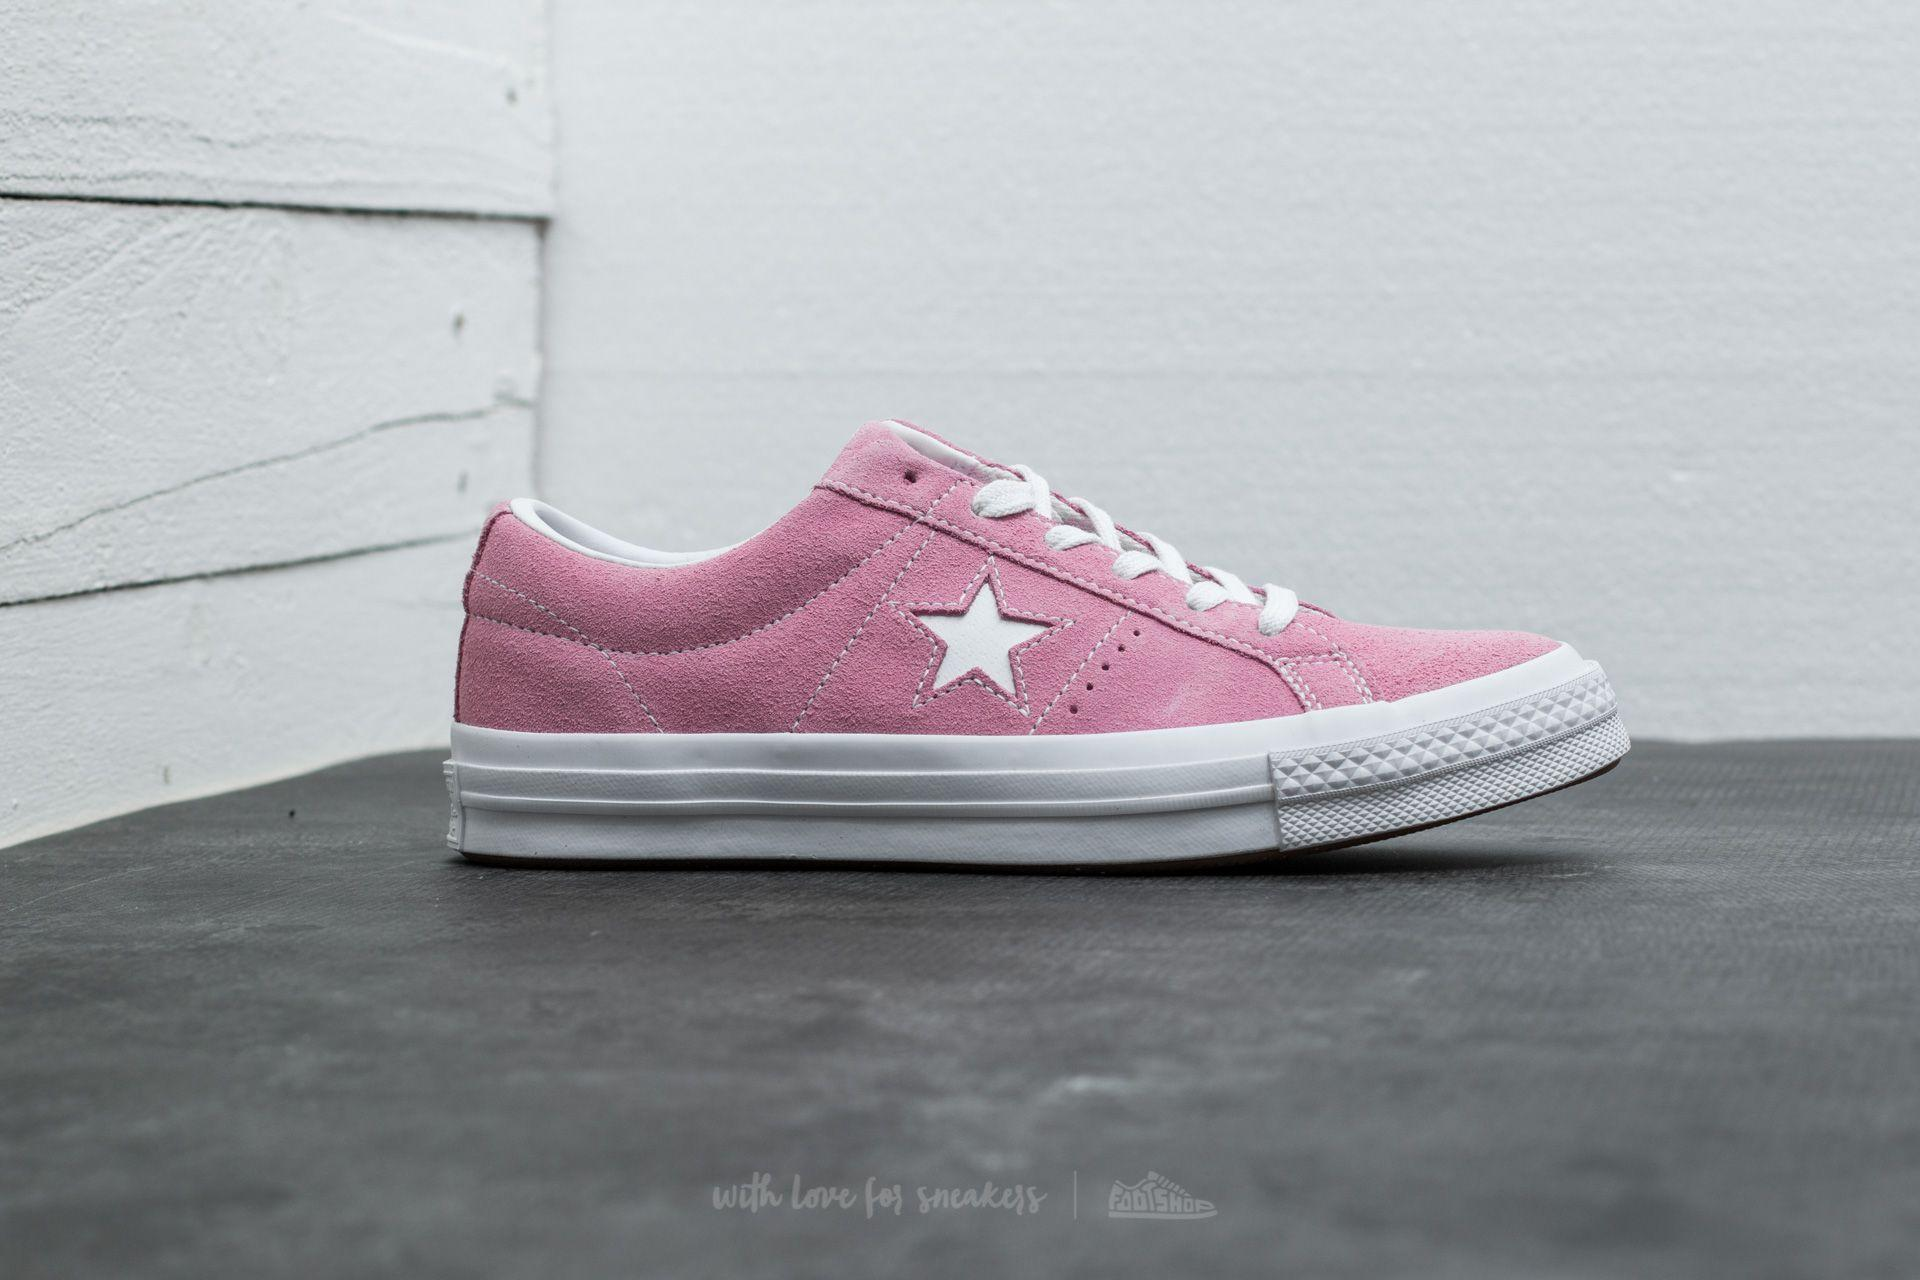 64a2dabfcd15b0 Lyst - Converse One Star Ox Pink Glow  White  White in Pink